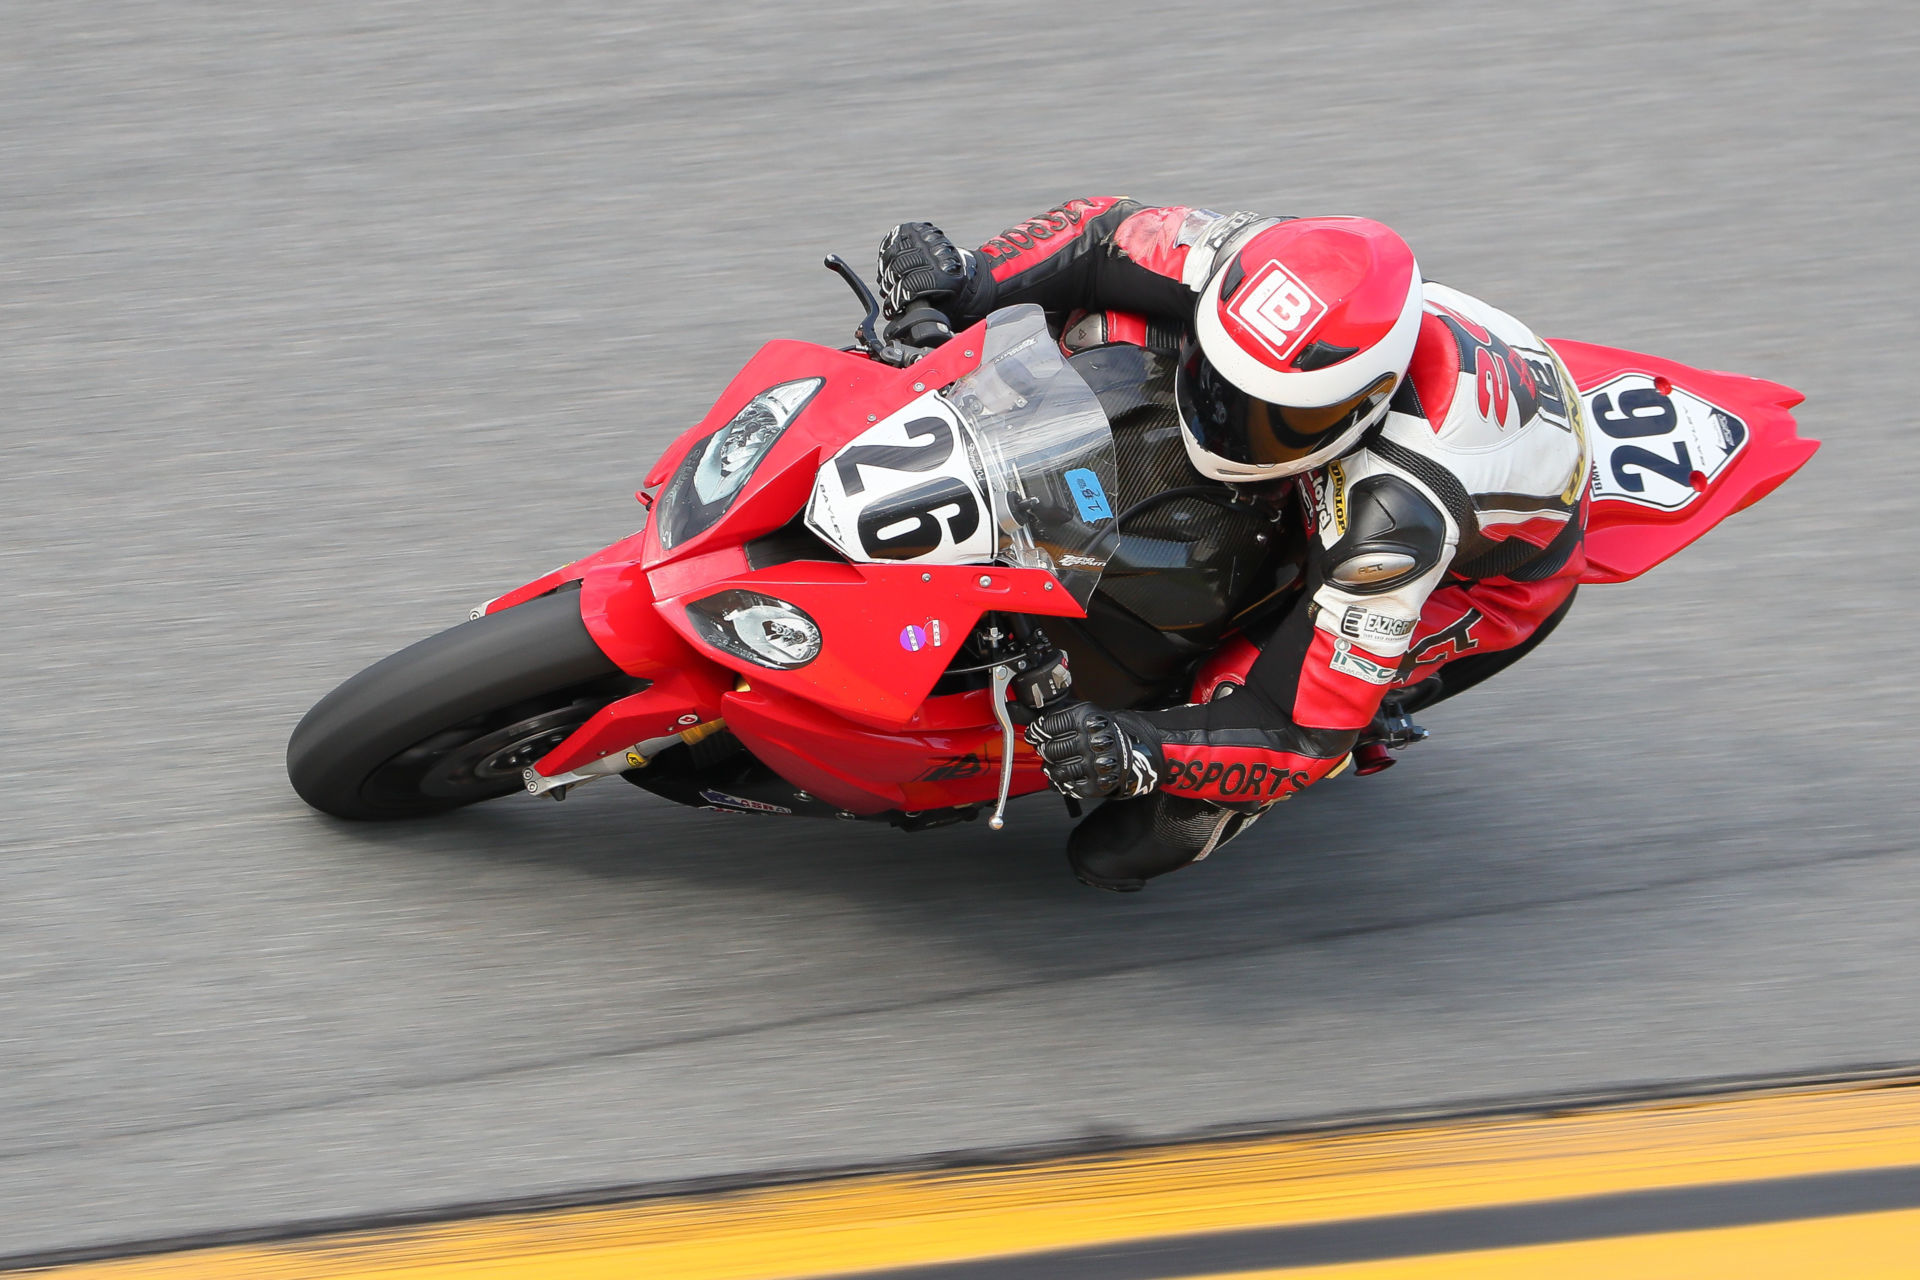 Lloyd Bayley (26) in action during the ASRA Team Challenge race at Daytona International Speedway in 2019. Photo by Brian J. Nelson.